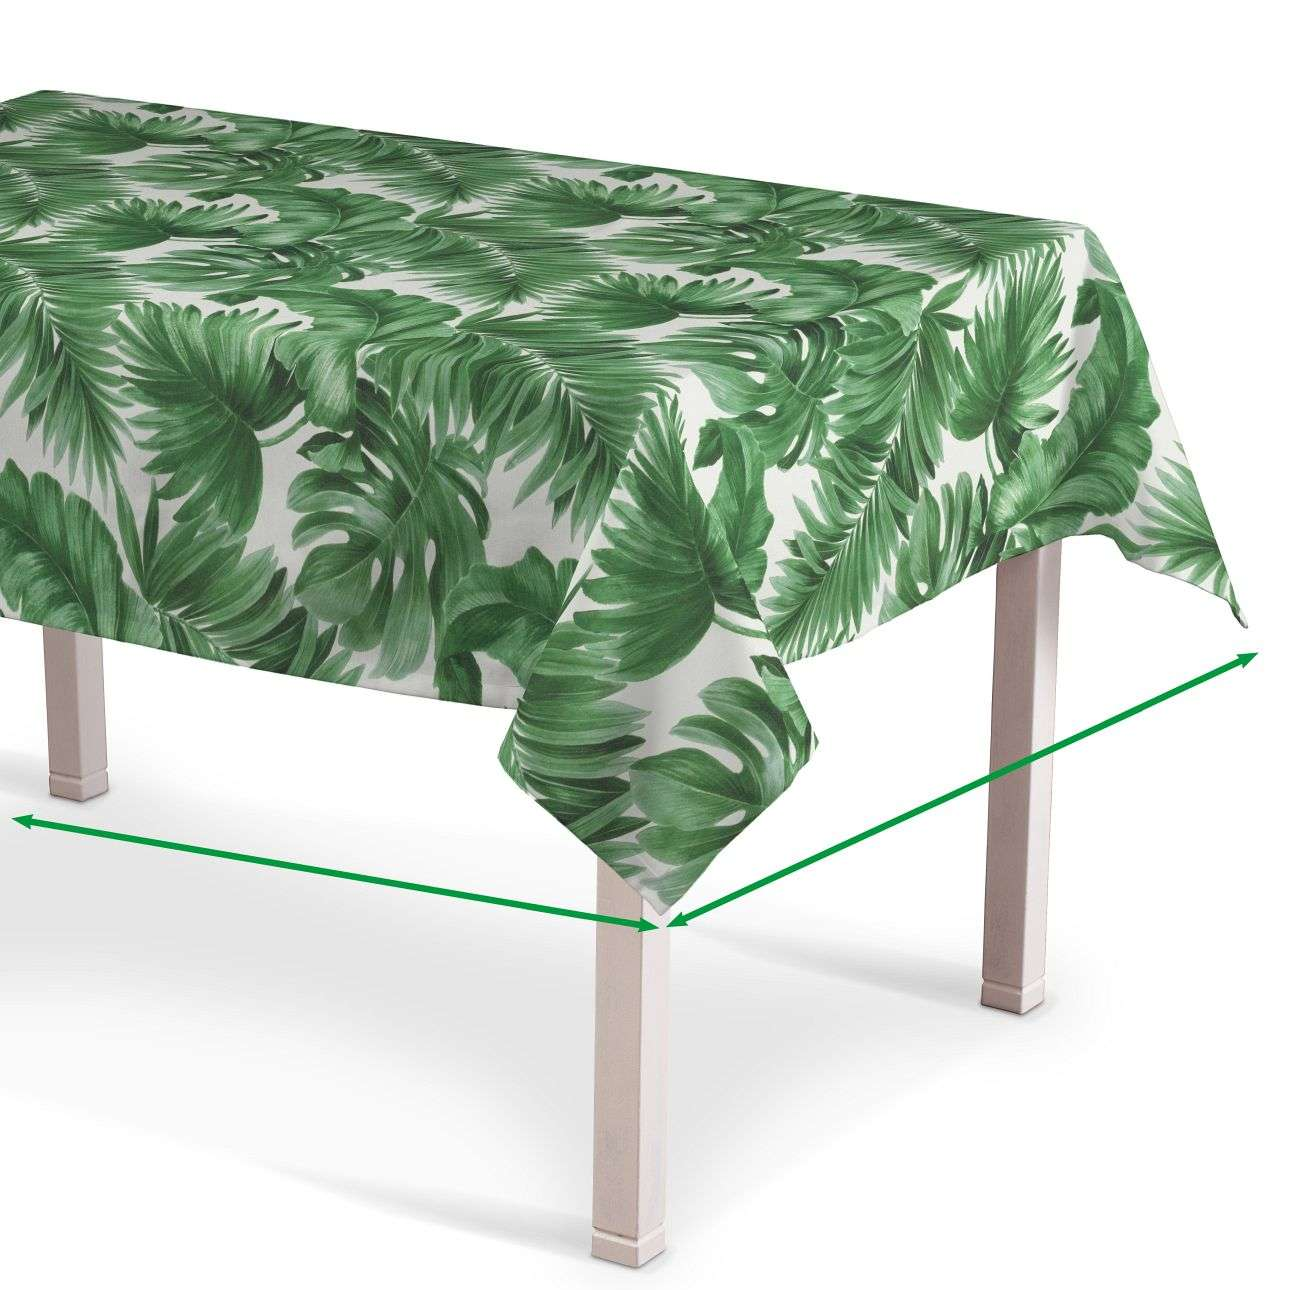 Rectangular tablecloth in collection Urban Jungle, fabric: 141-71